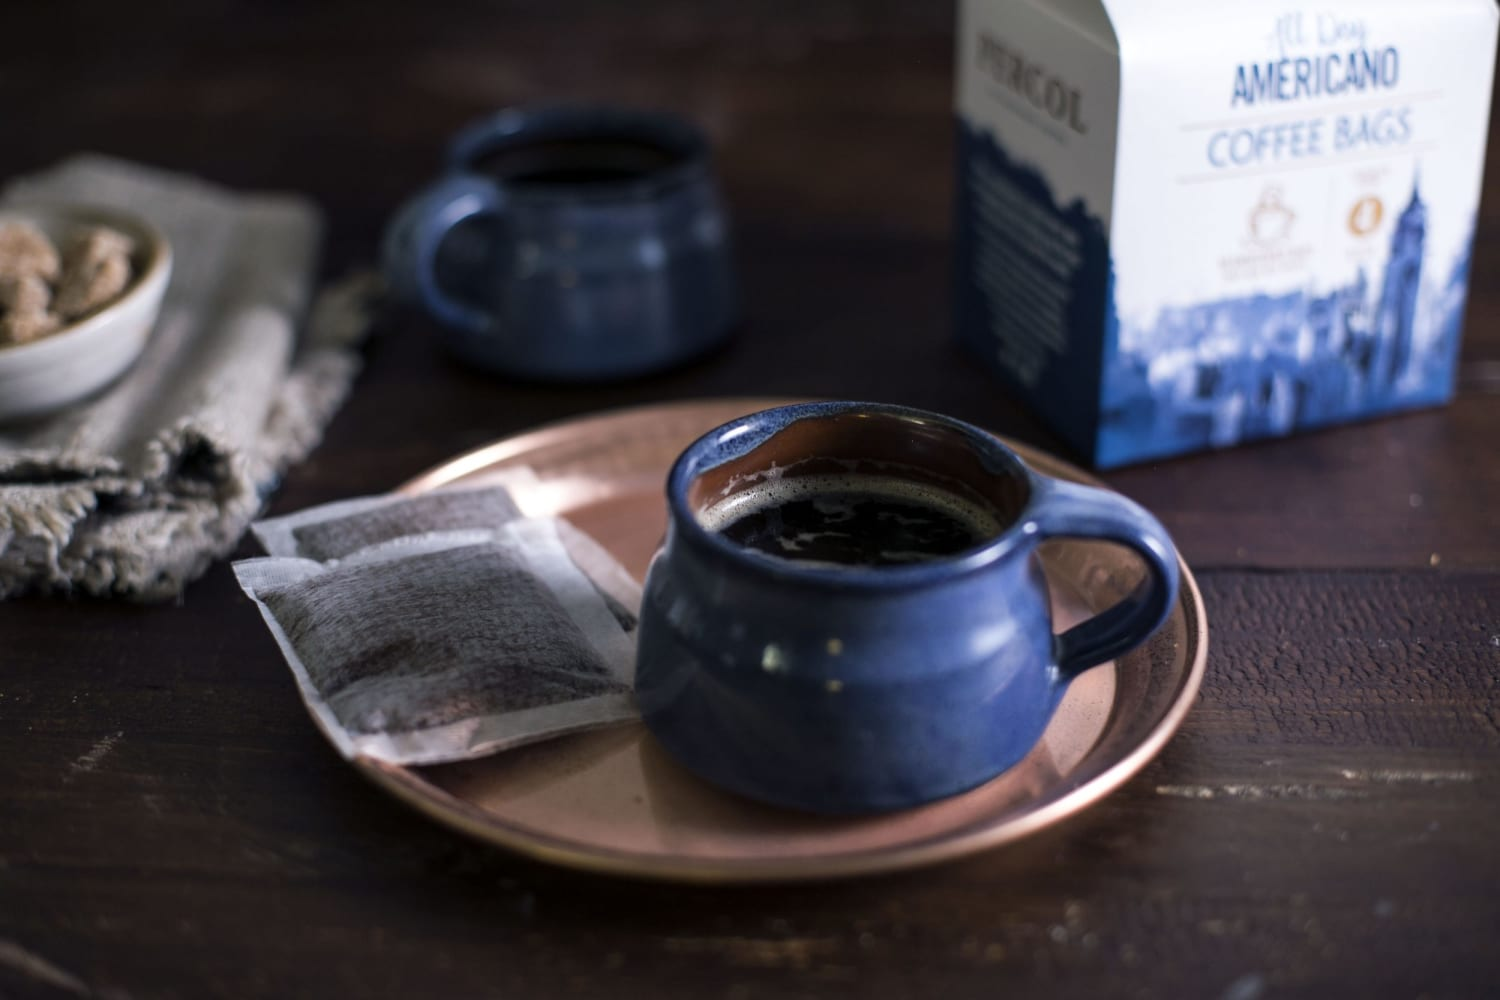 All Day Americano Coffee Bags Cup